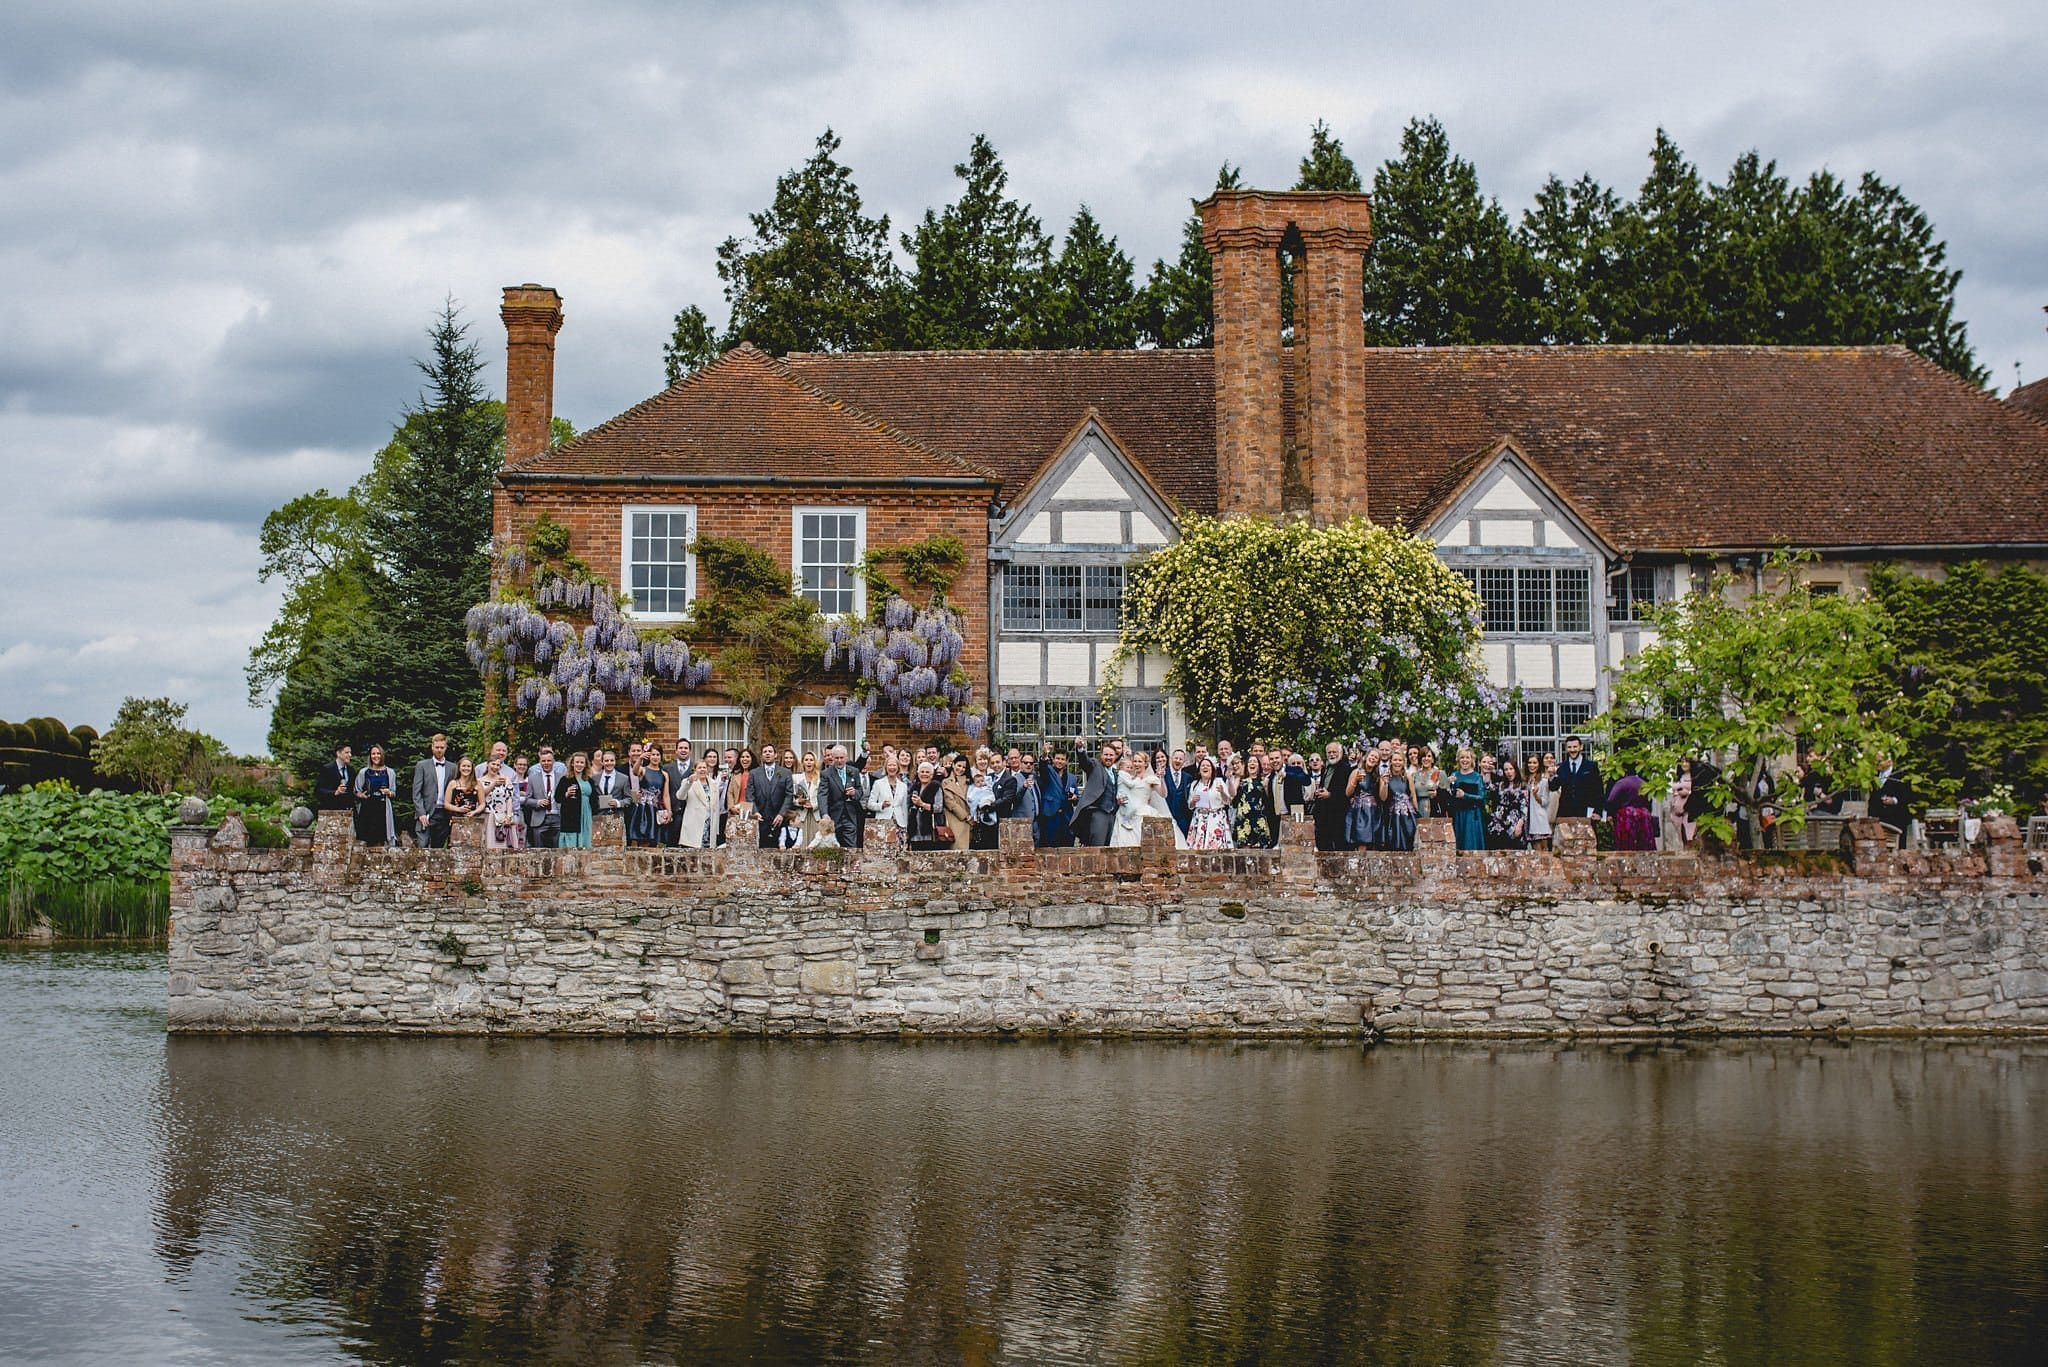 A group shot across the water of all the wedding guests at Birtsmorton Court